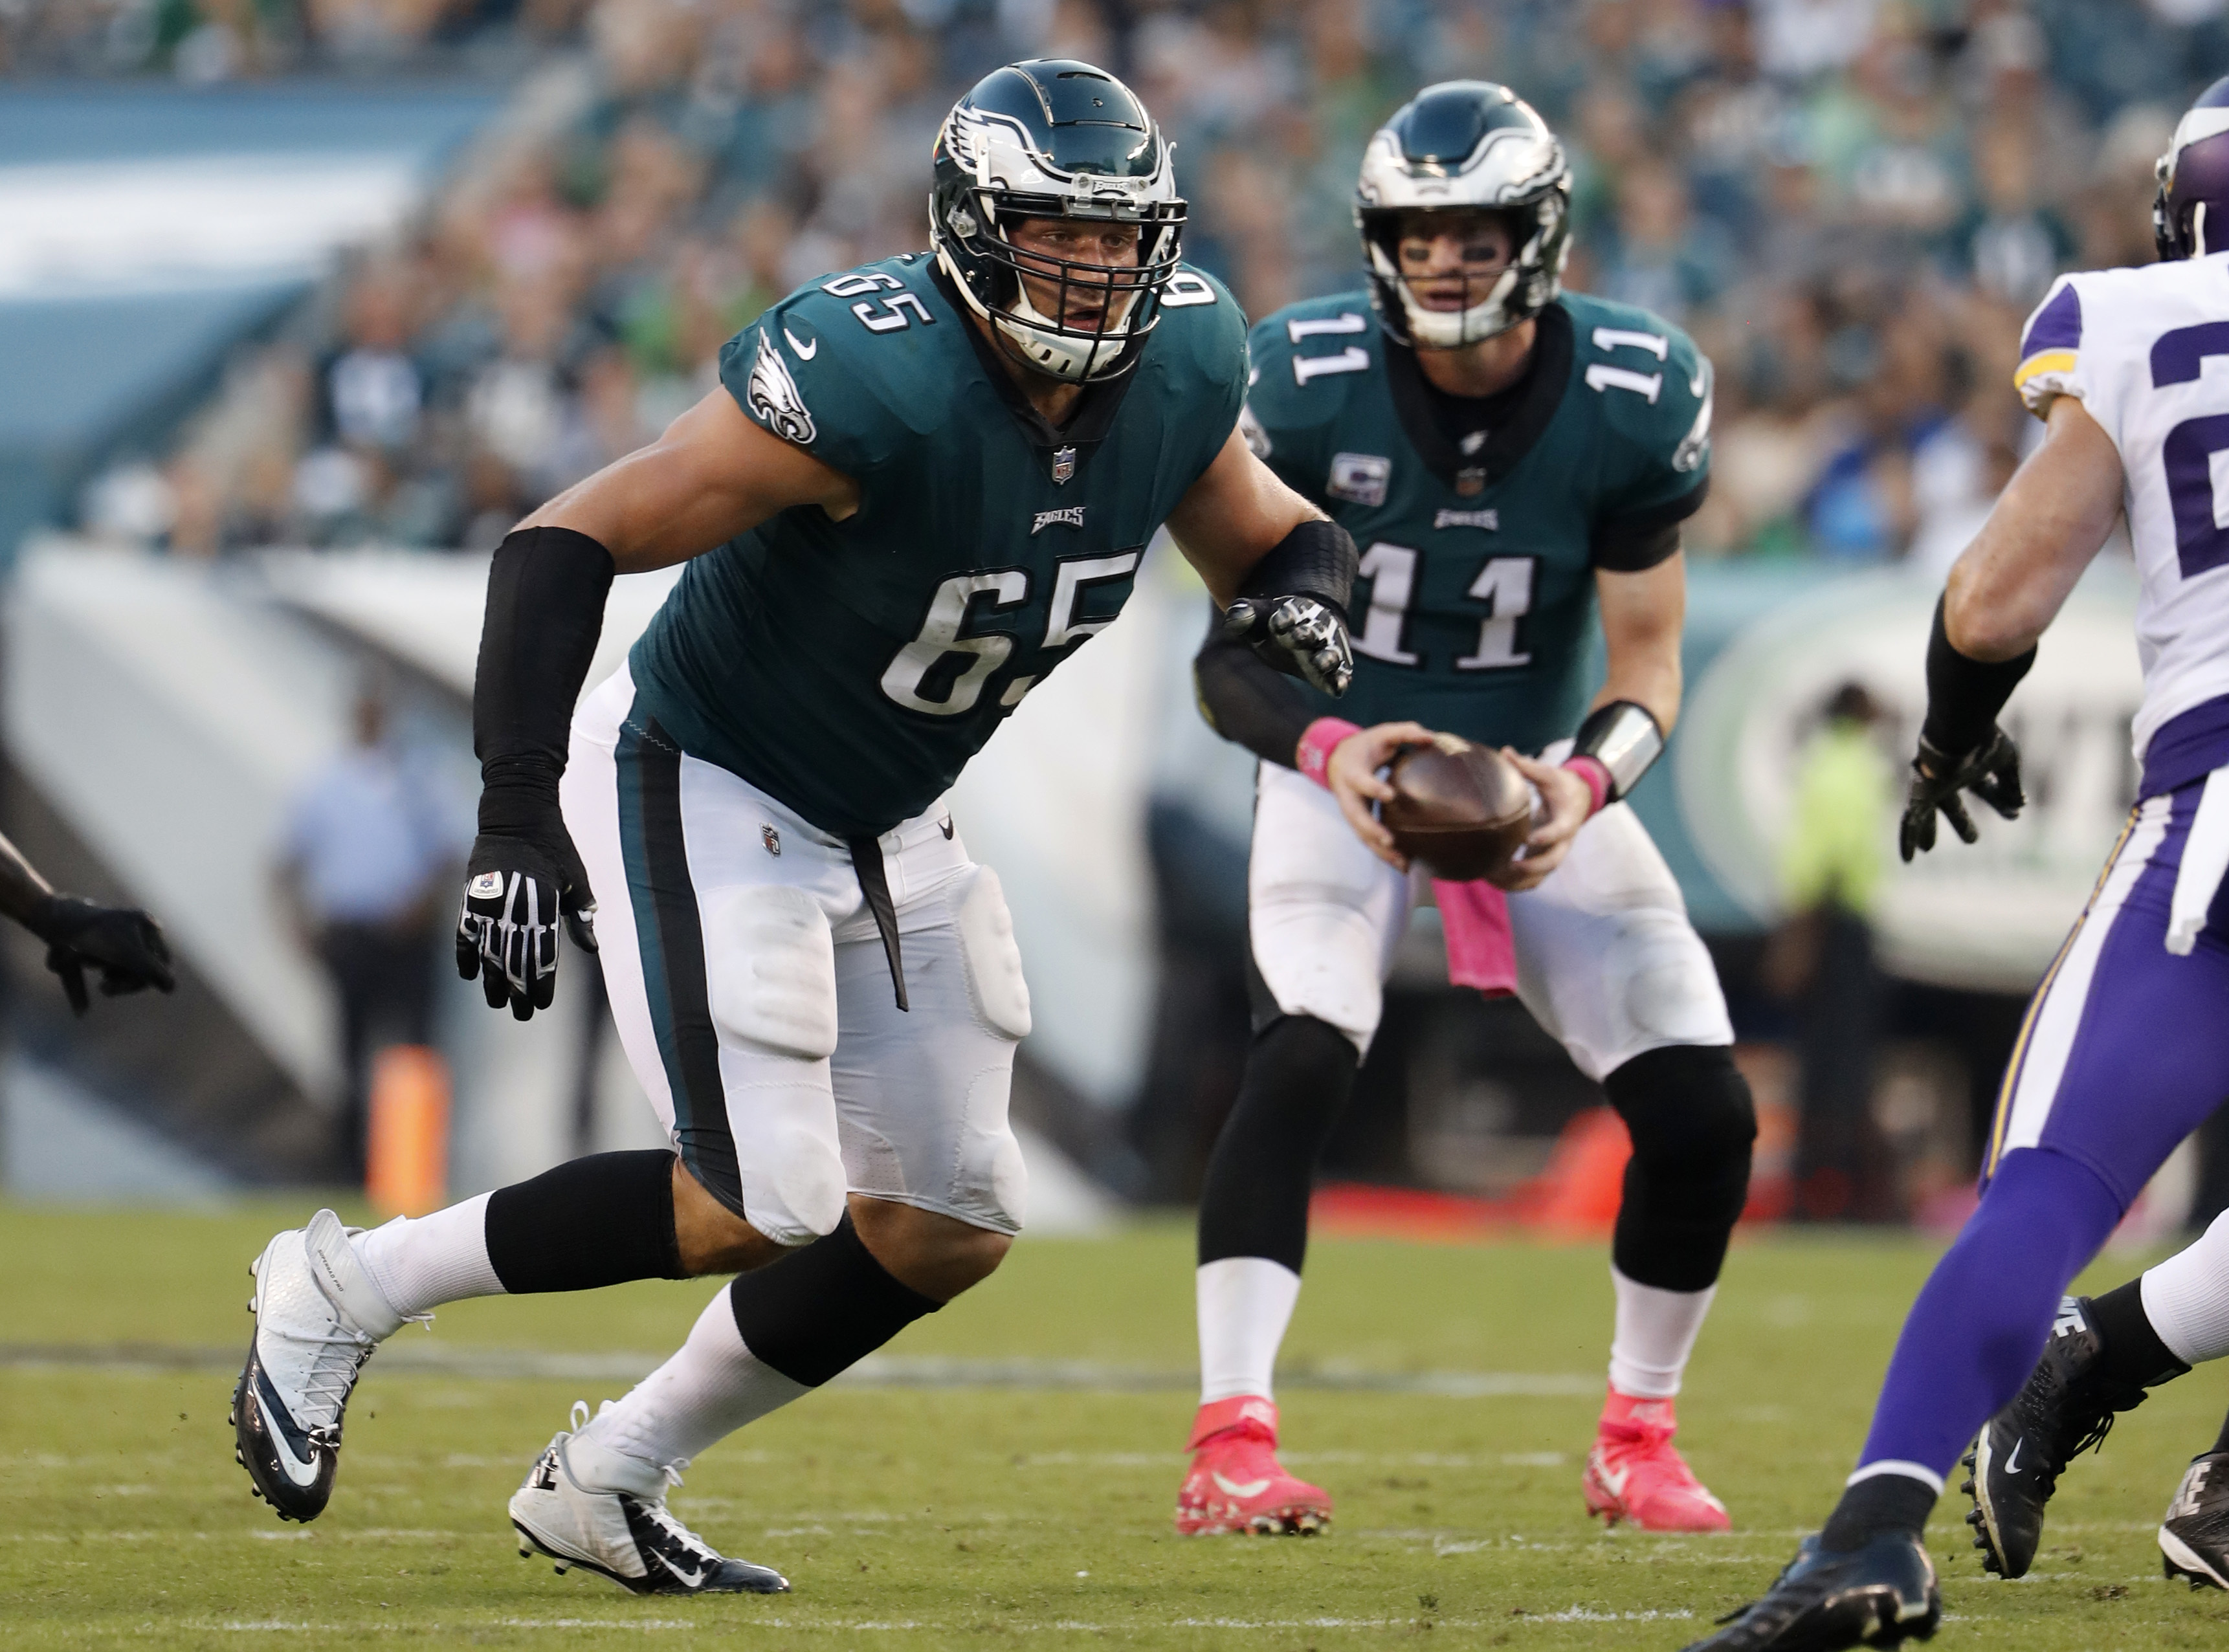 NFL on TV today (10/13/19): What time, channel is Philadelphia Eagles vs. Minnesota Vikings on Sunday? FREE live stream, watch online | NFL Week 6